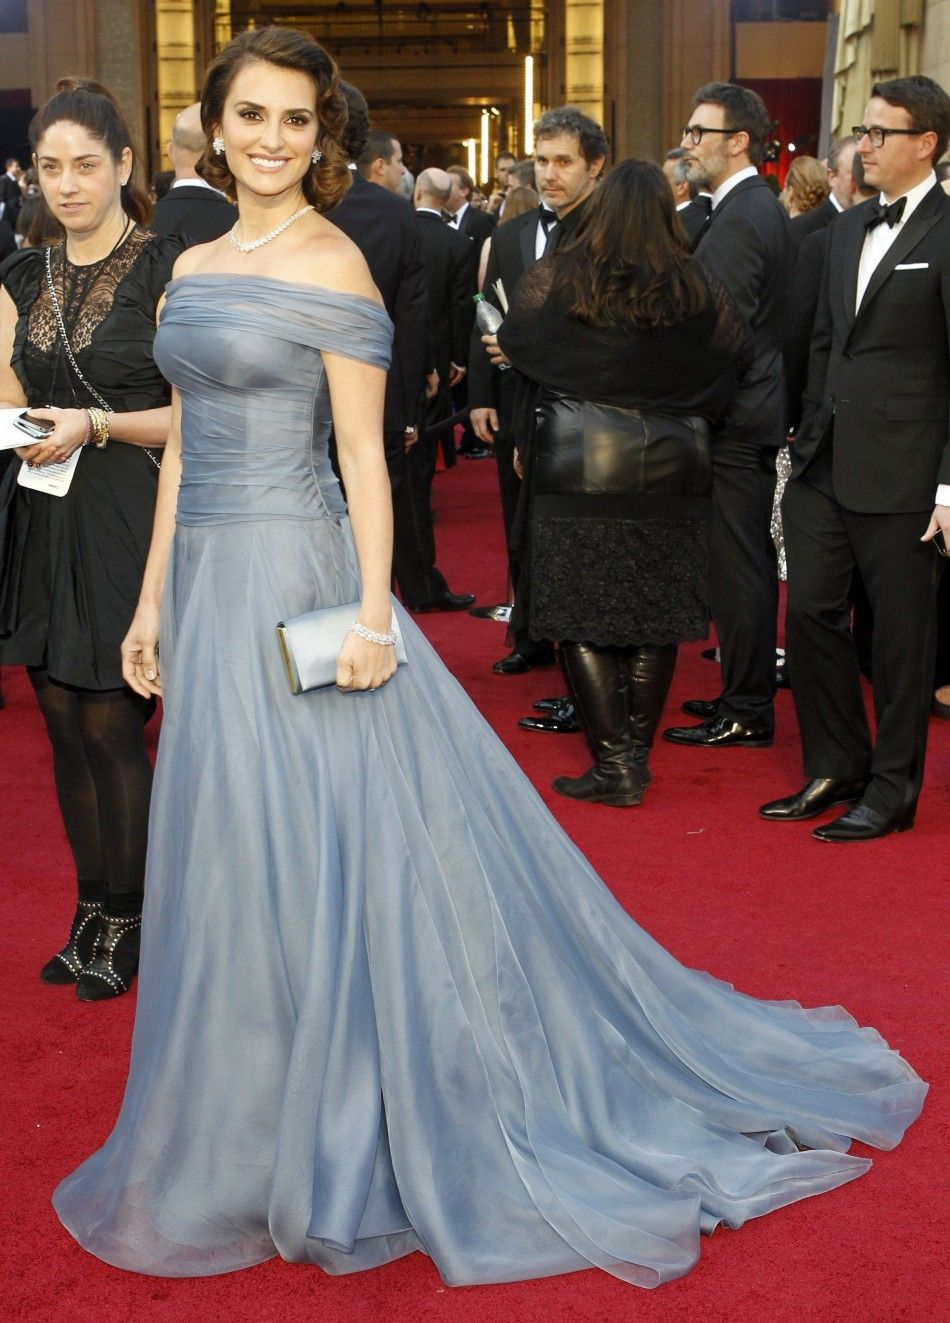 Actress Penelope Cruz poses at the 84th Academy Awards in Hollywood, California, February 26, 2012.